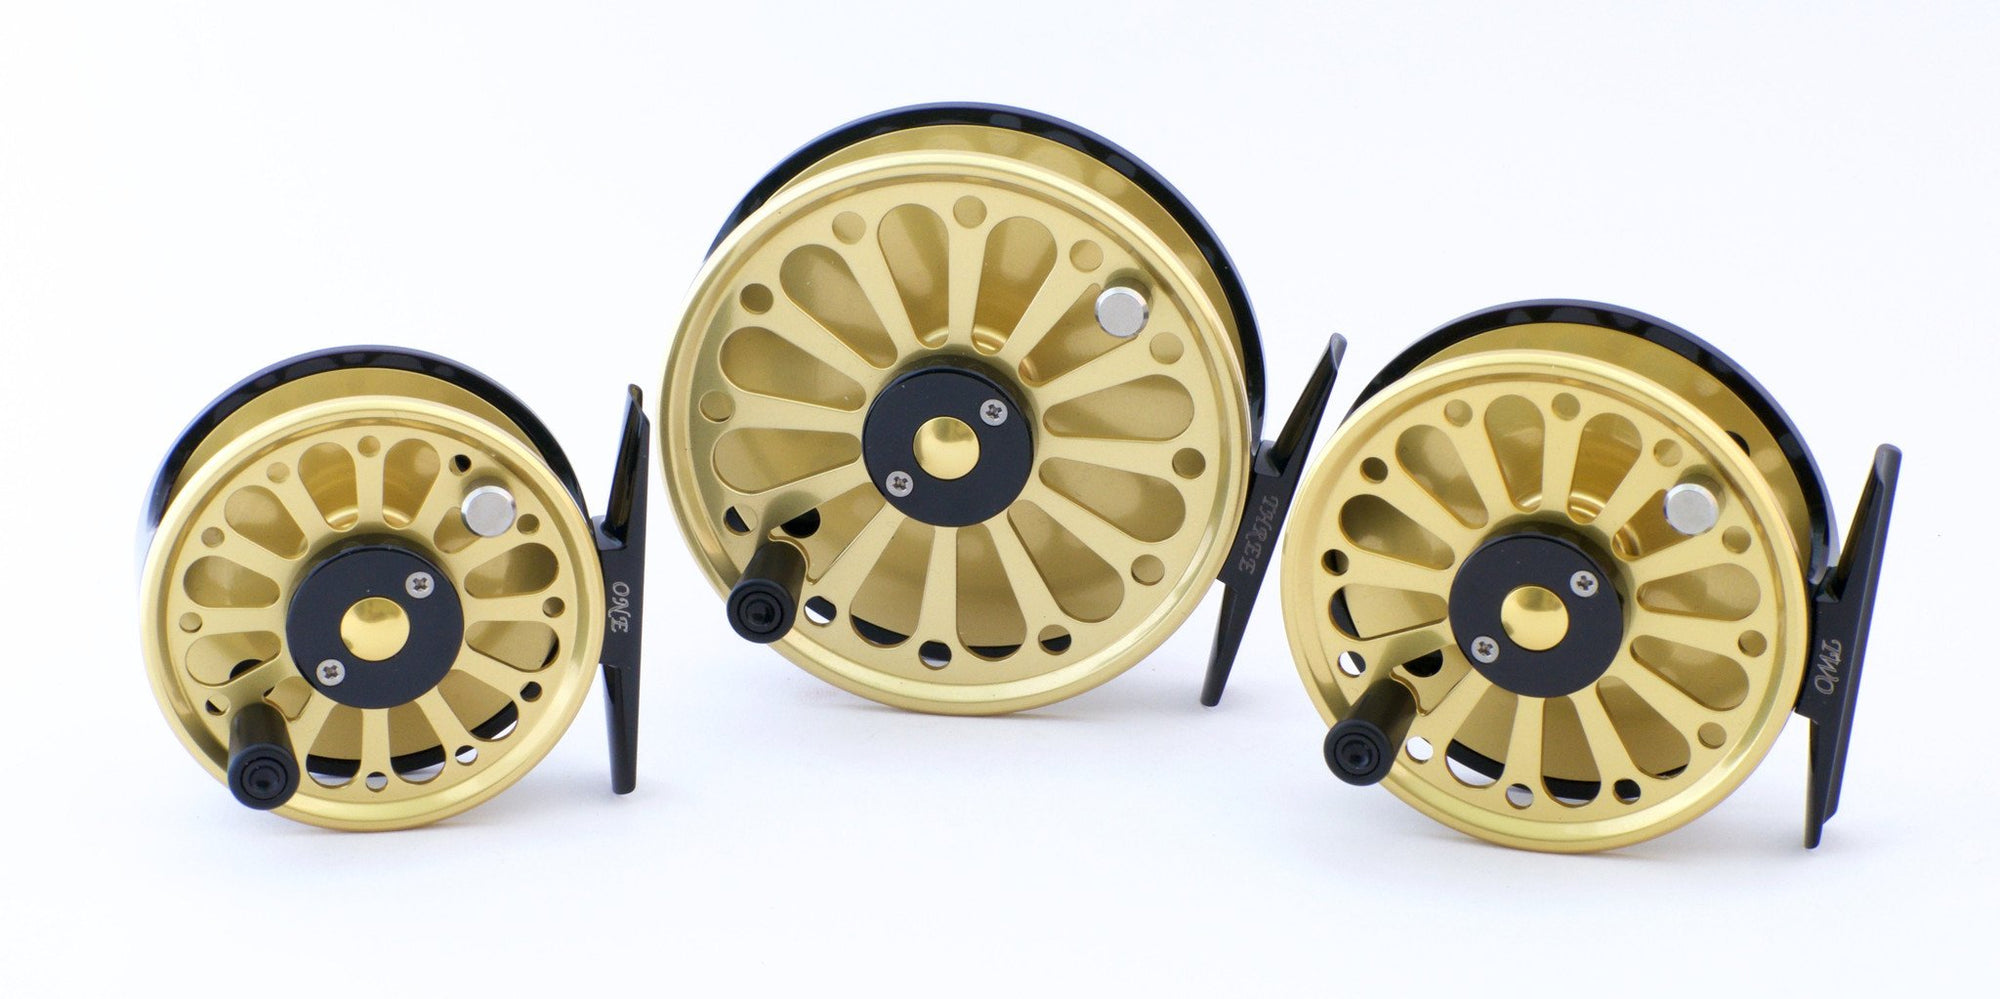 Ross San Miguel Limited Edition Reel Set - Reel in a Cure